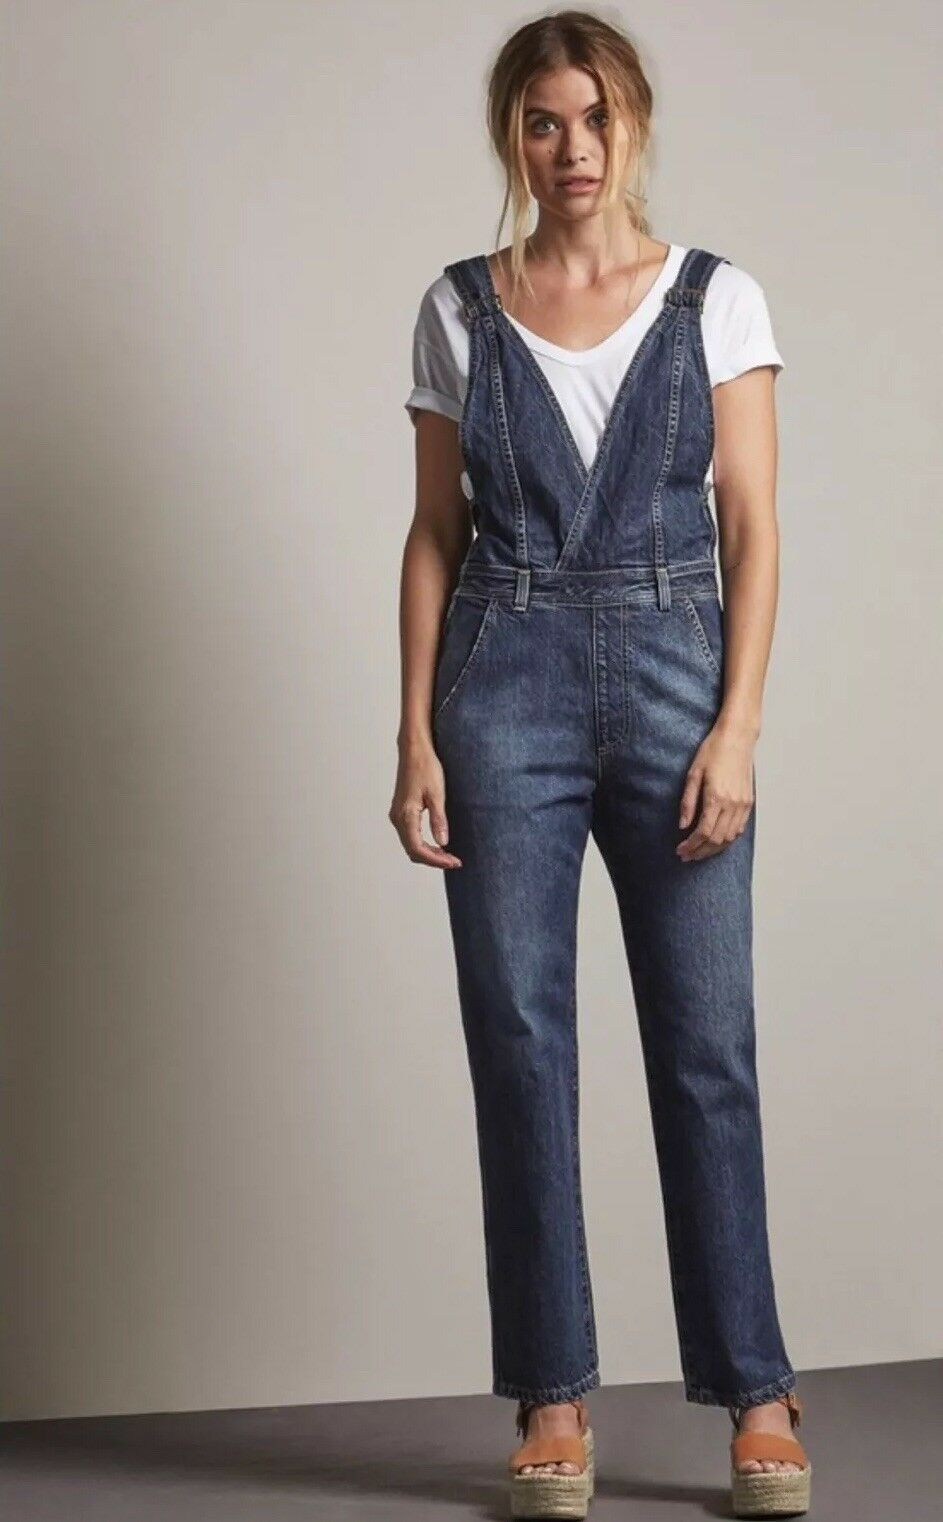 f7b2b093fa1d AG Adriano Goldschmied Mabel Overalls - Anthropologie M for sale ...